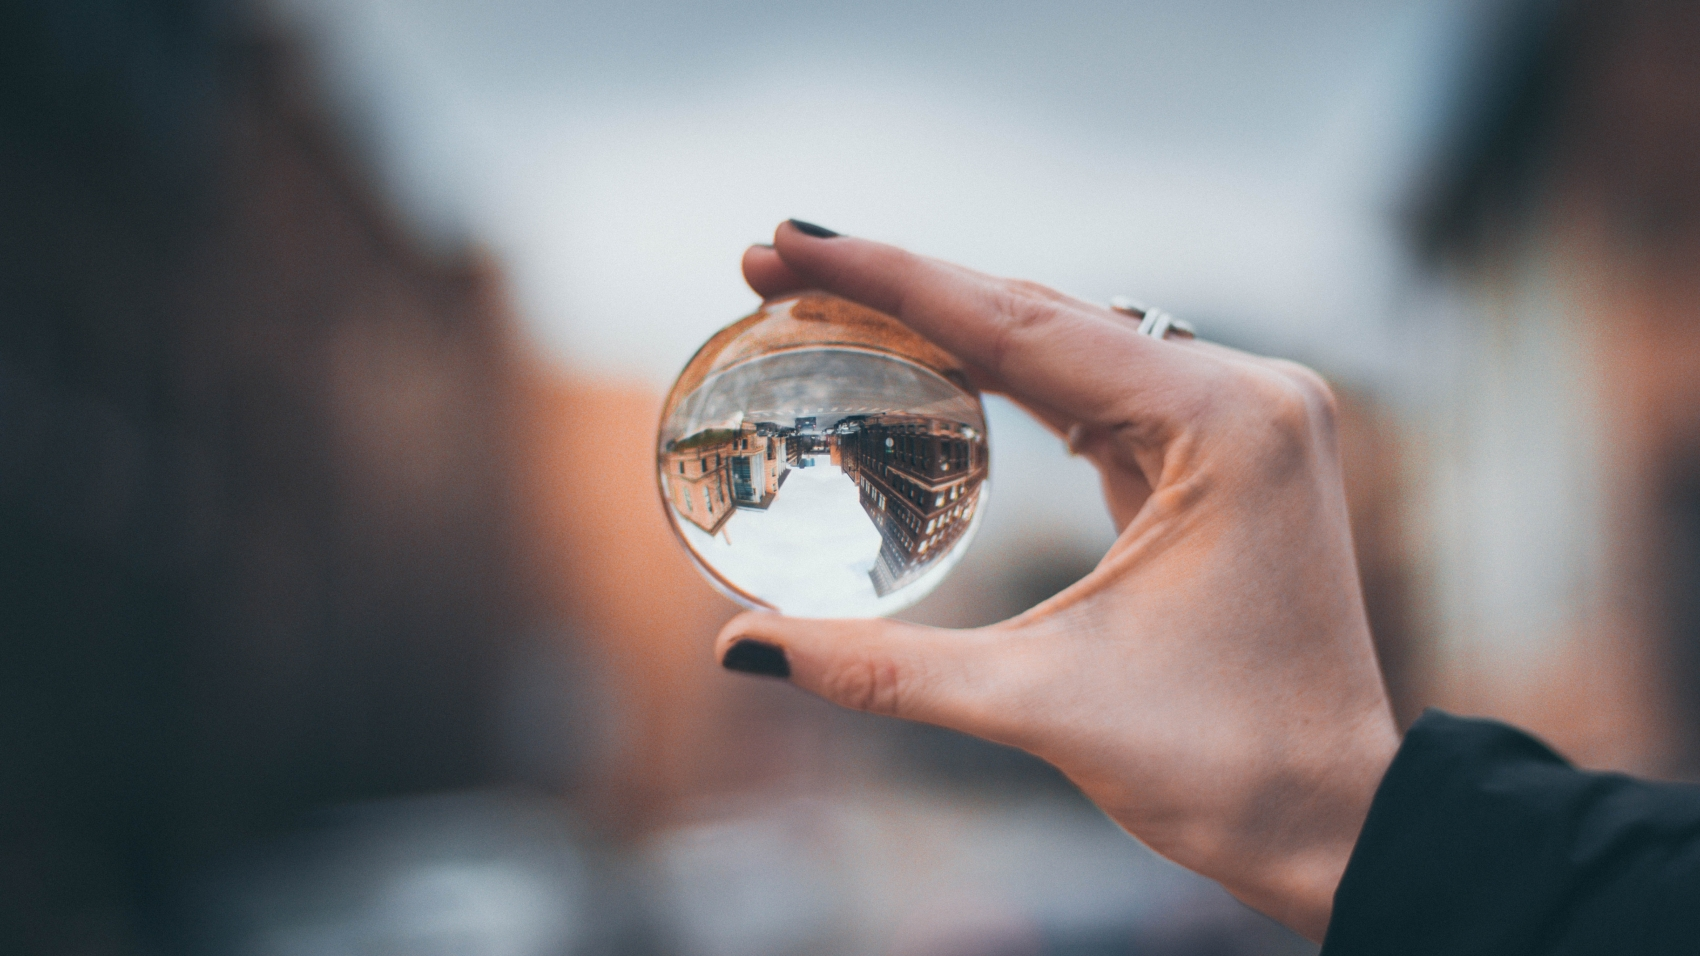 The ability to look at situations from a new lens is a very powerful tool used by high-achievers. Image by: Anika Huizinga